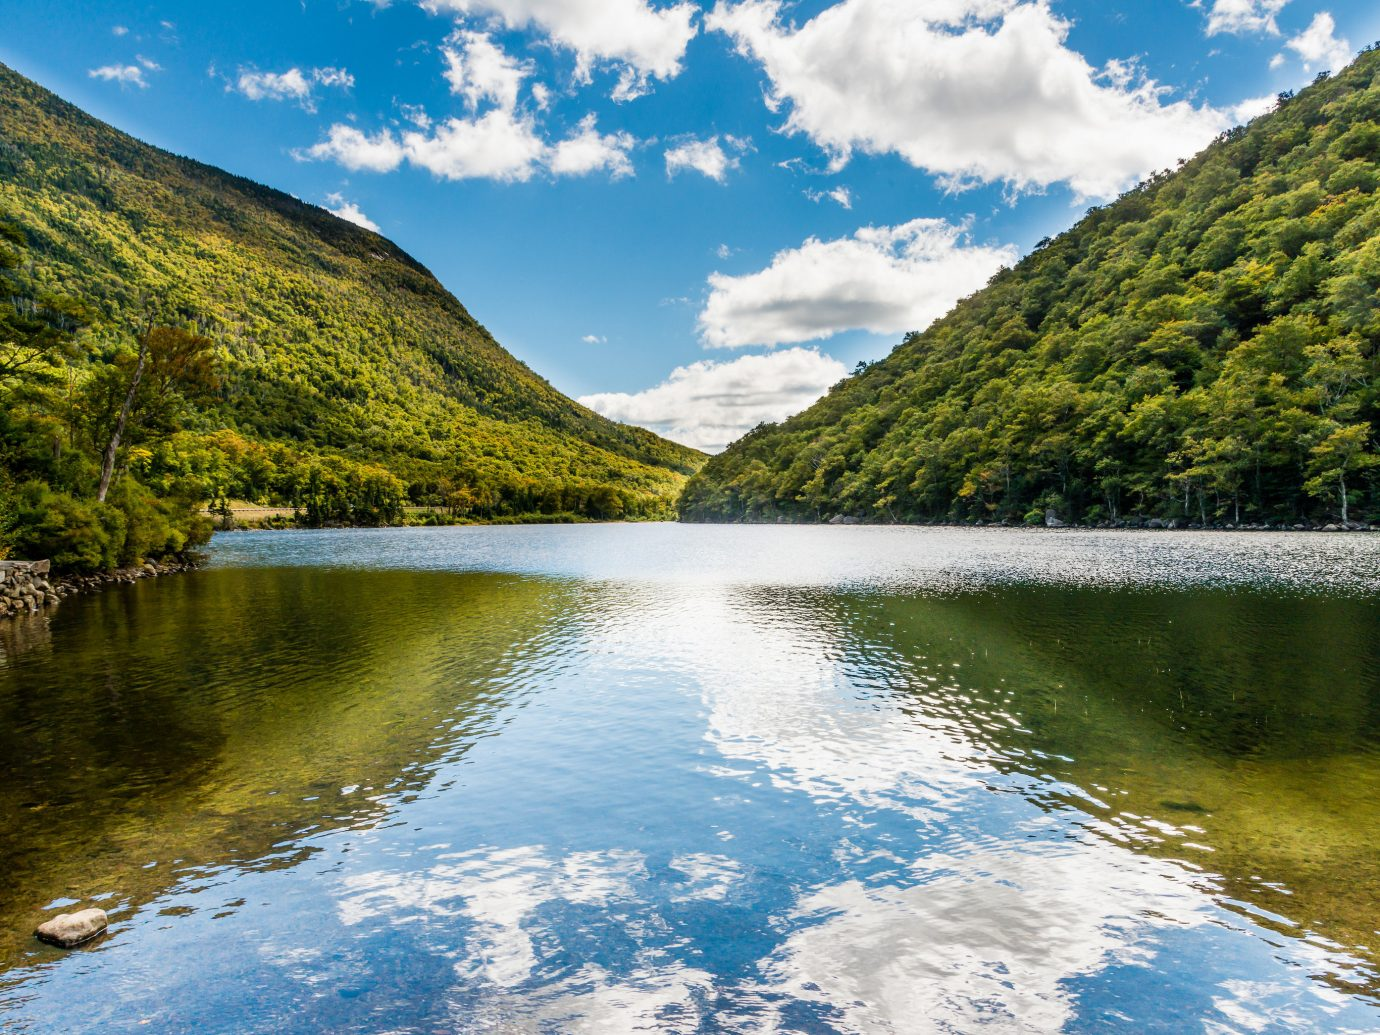 Trip Ideas water outdoor sky Nature mountain mountainous landforms reflection Lake body of water wilderness tarn loch River surrounded mountain range reservoir landscape fjord valley autumn hillside pond